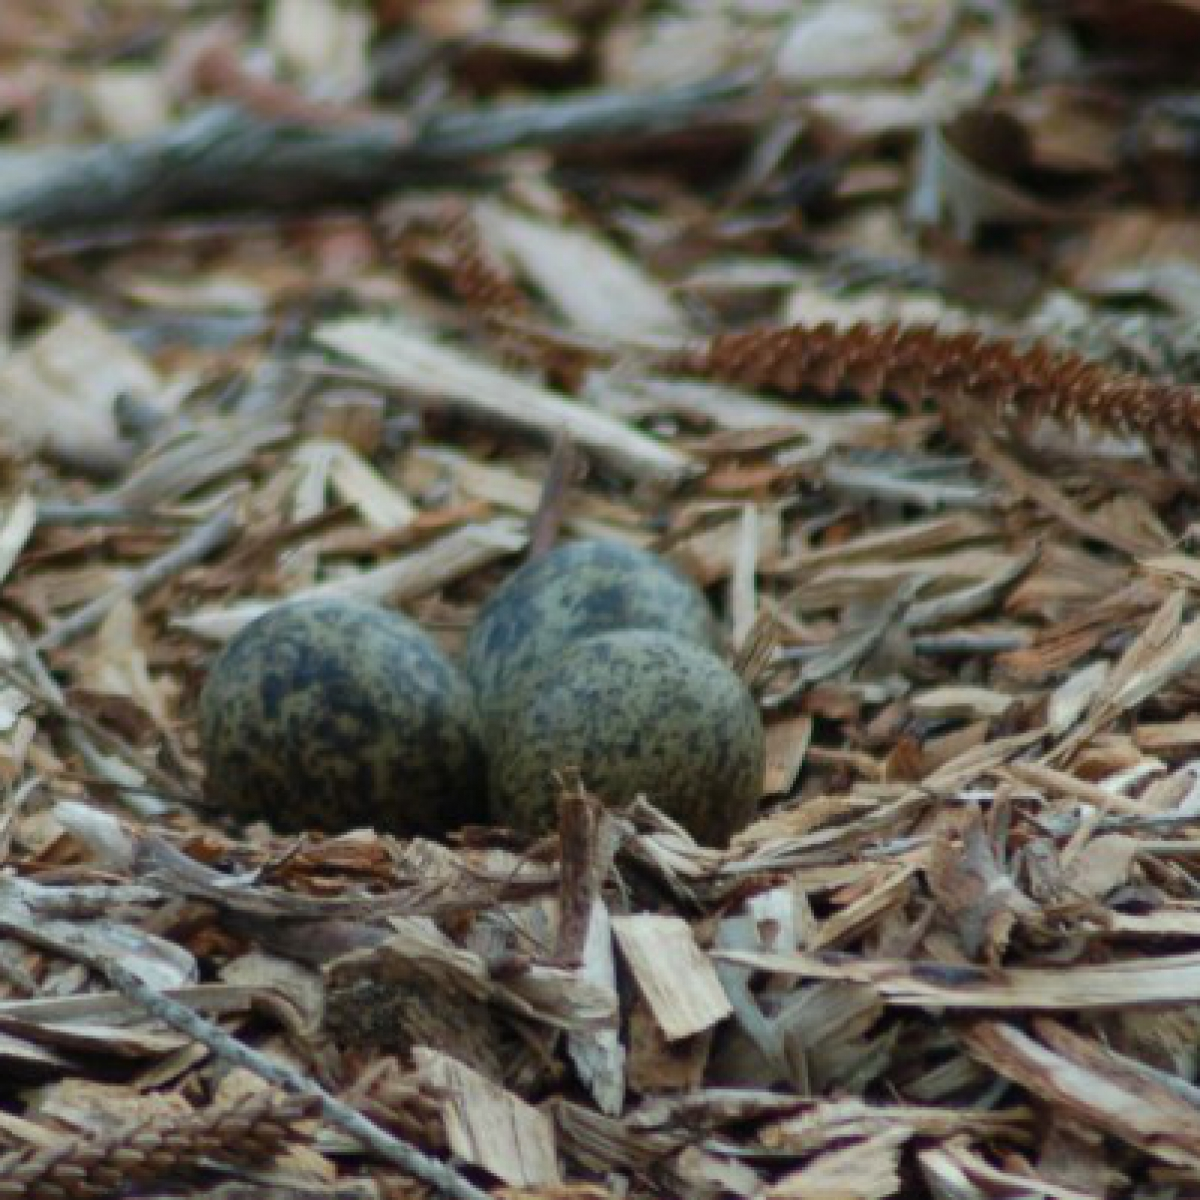 364 Masked Lapwing nest and eggs